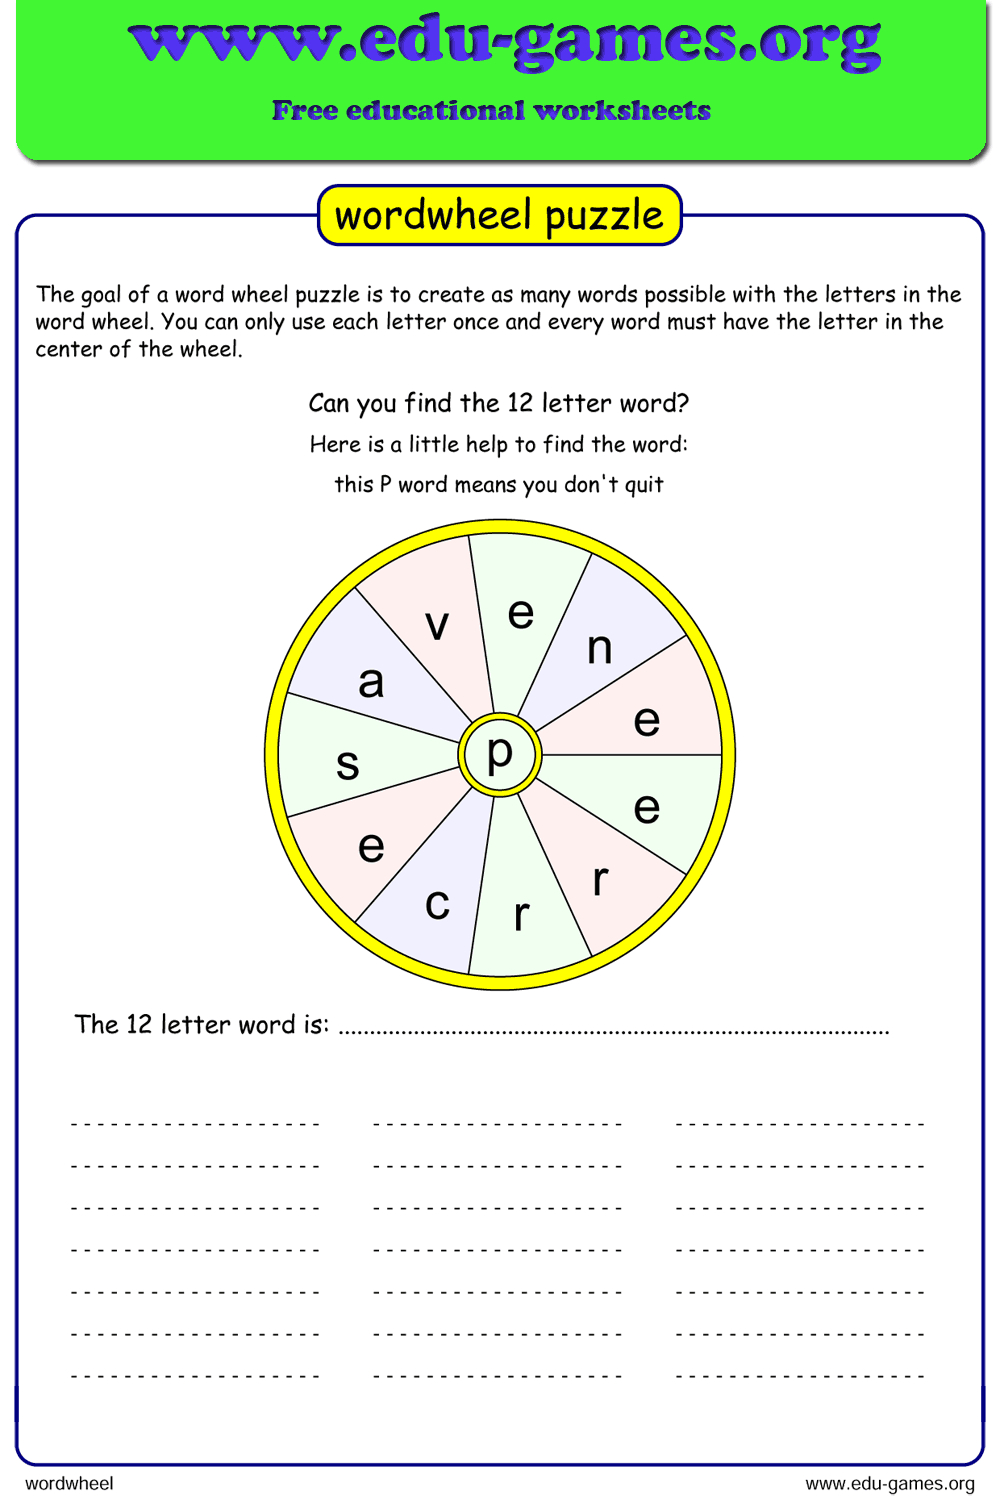 Free Printable Word Wheel Maker, Includes A List Of Words intended for Alphabet Worksheets Generator